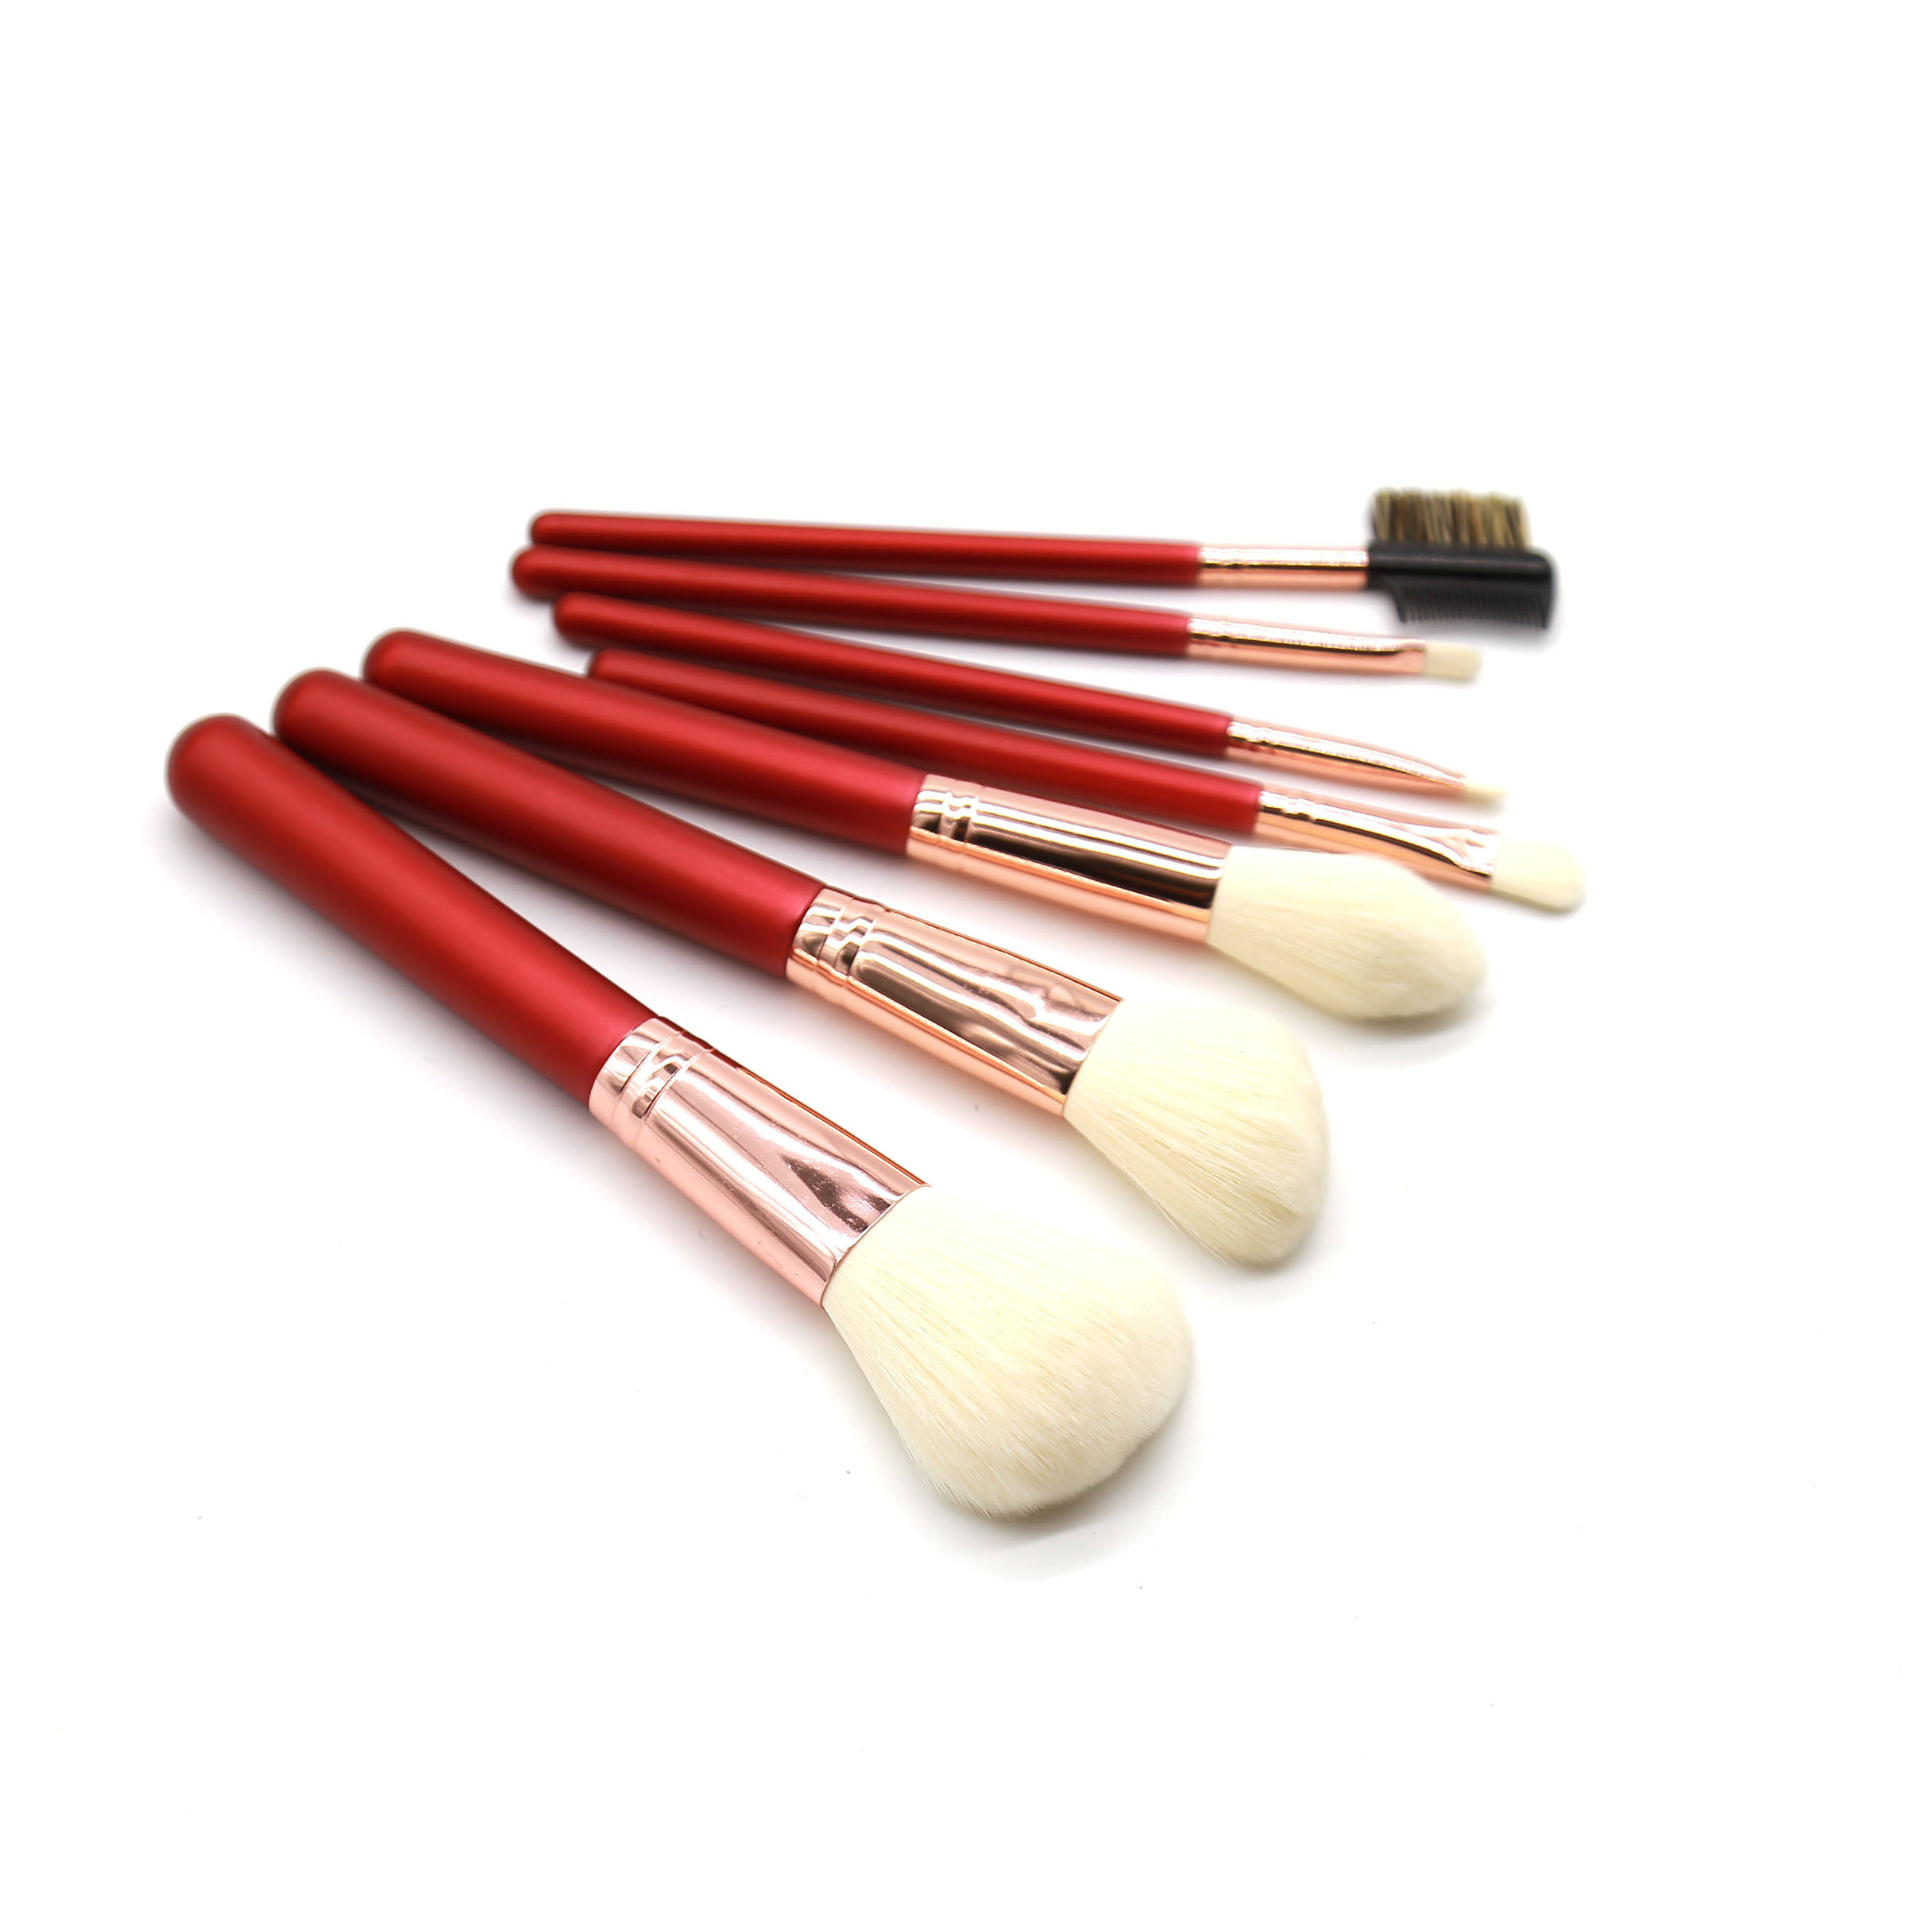 OEM private label professionelle make-up pinsel set weiß personalisierte bilden pinsel set